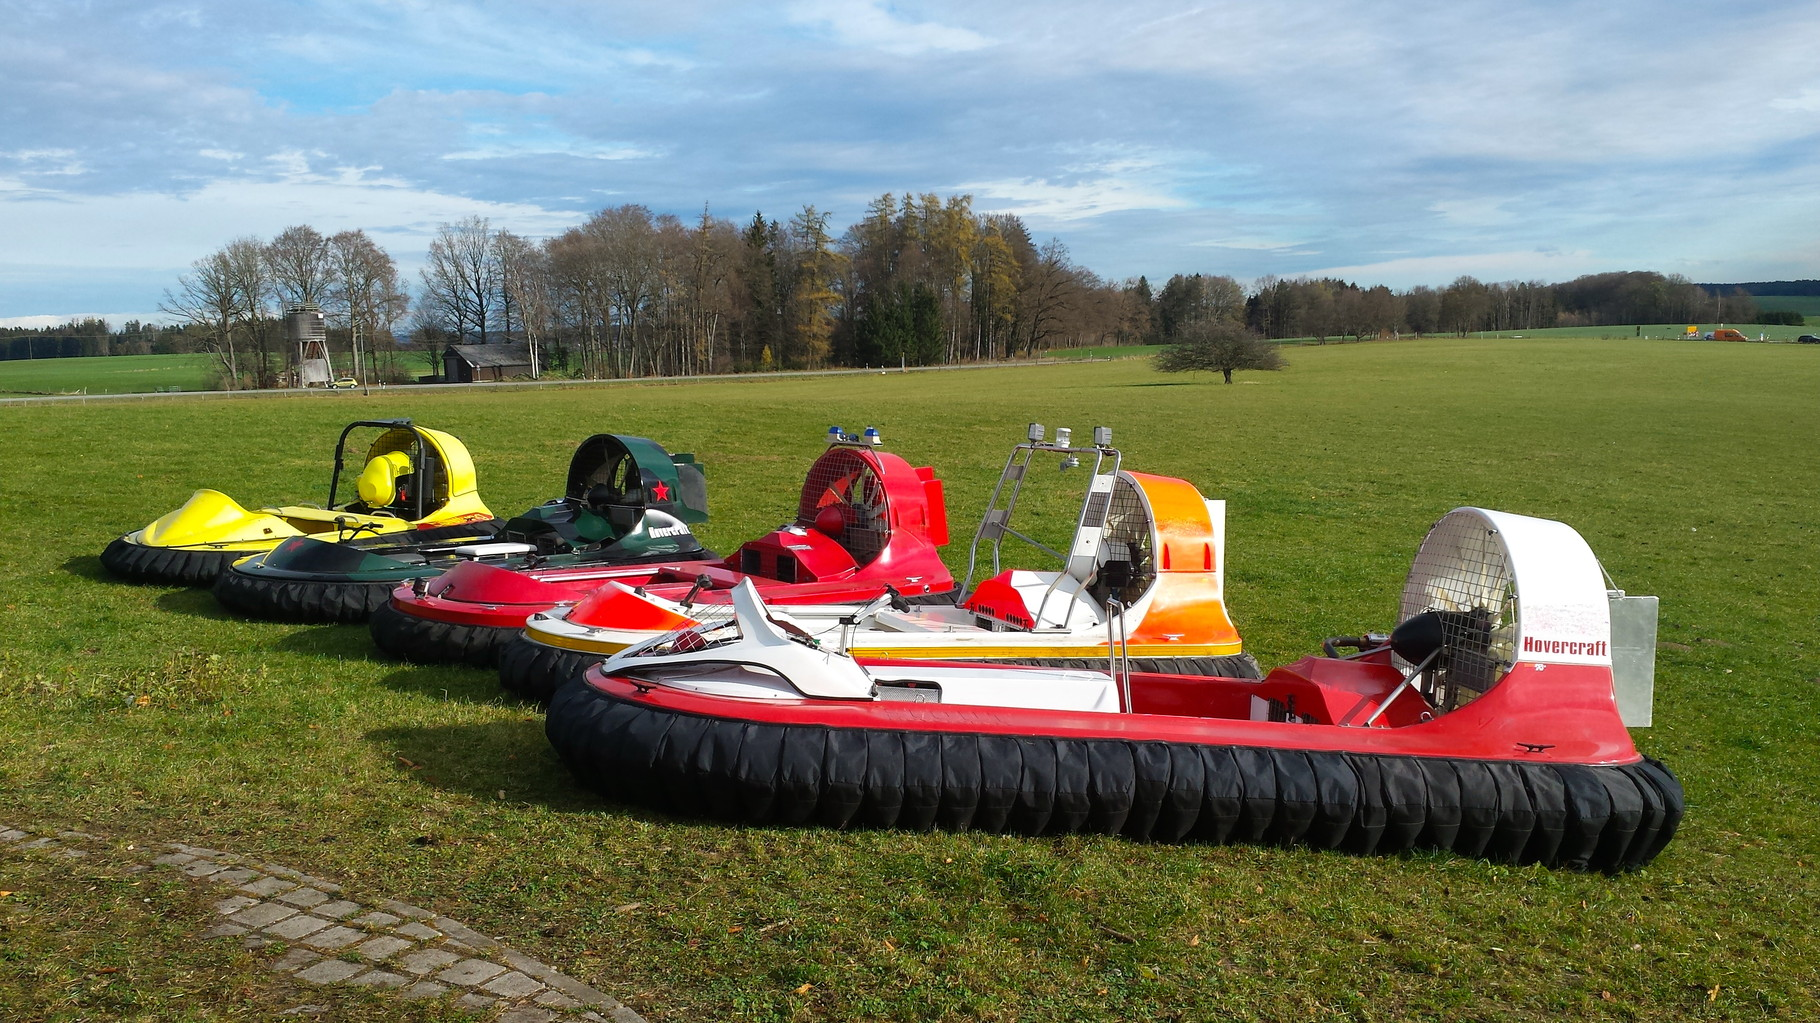 Hovercraft Luftkissenboot Event